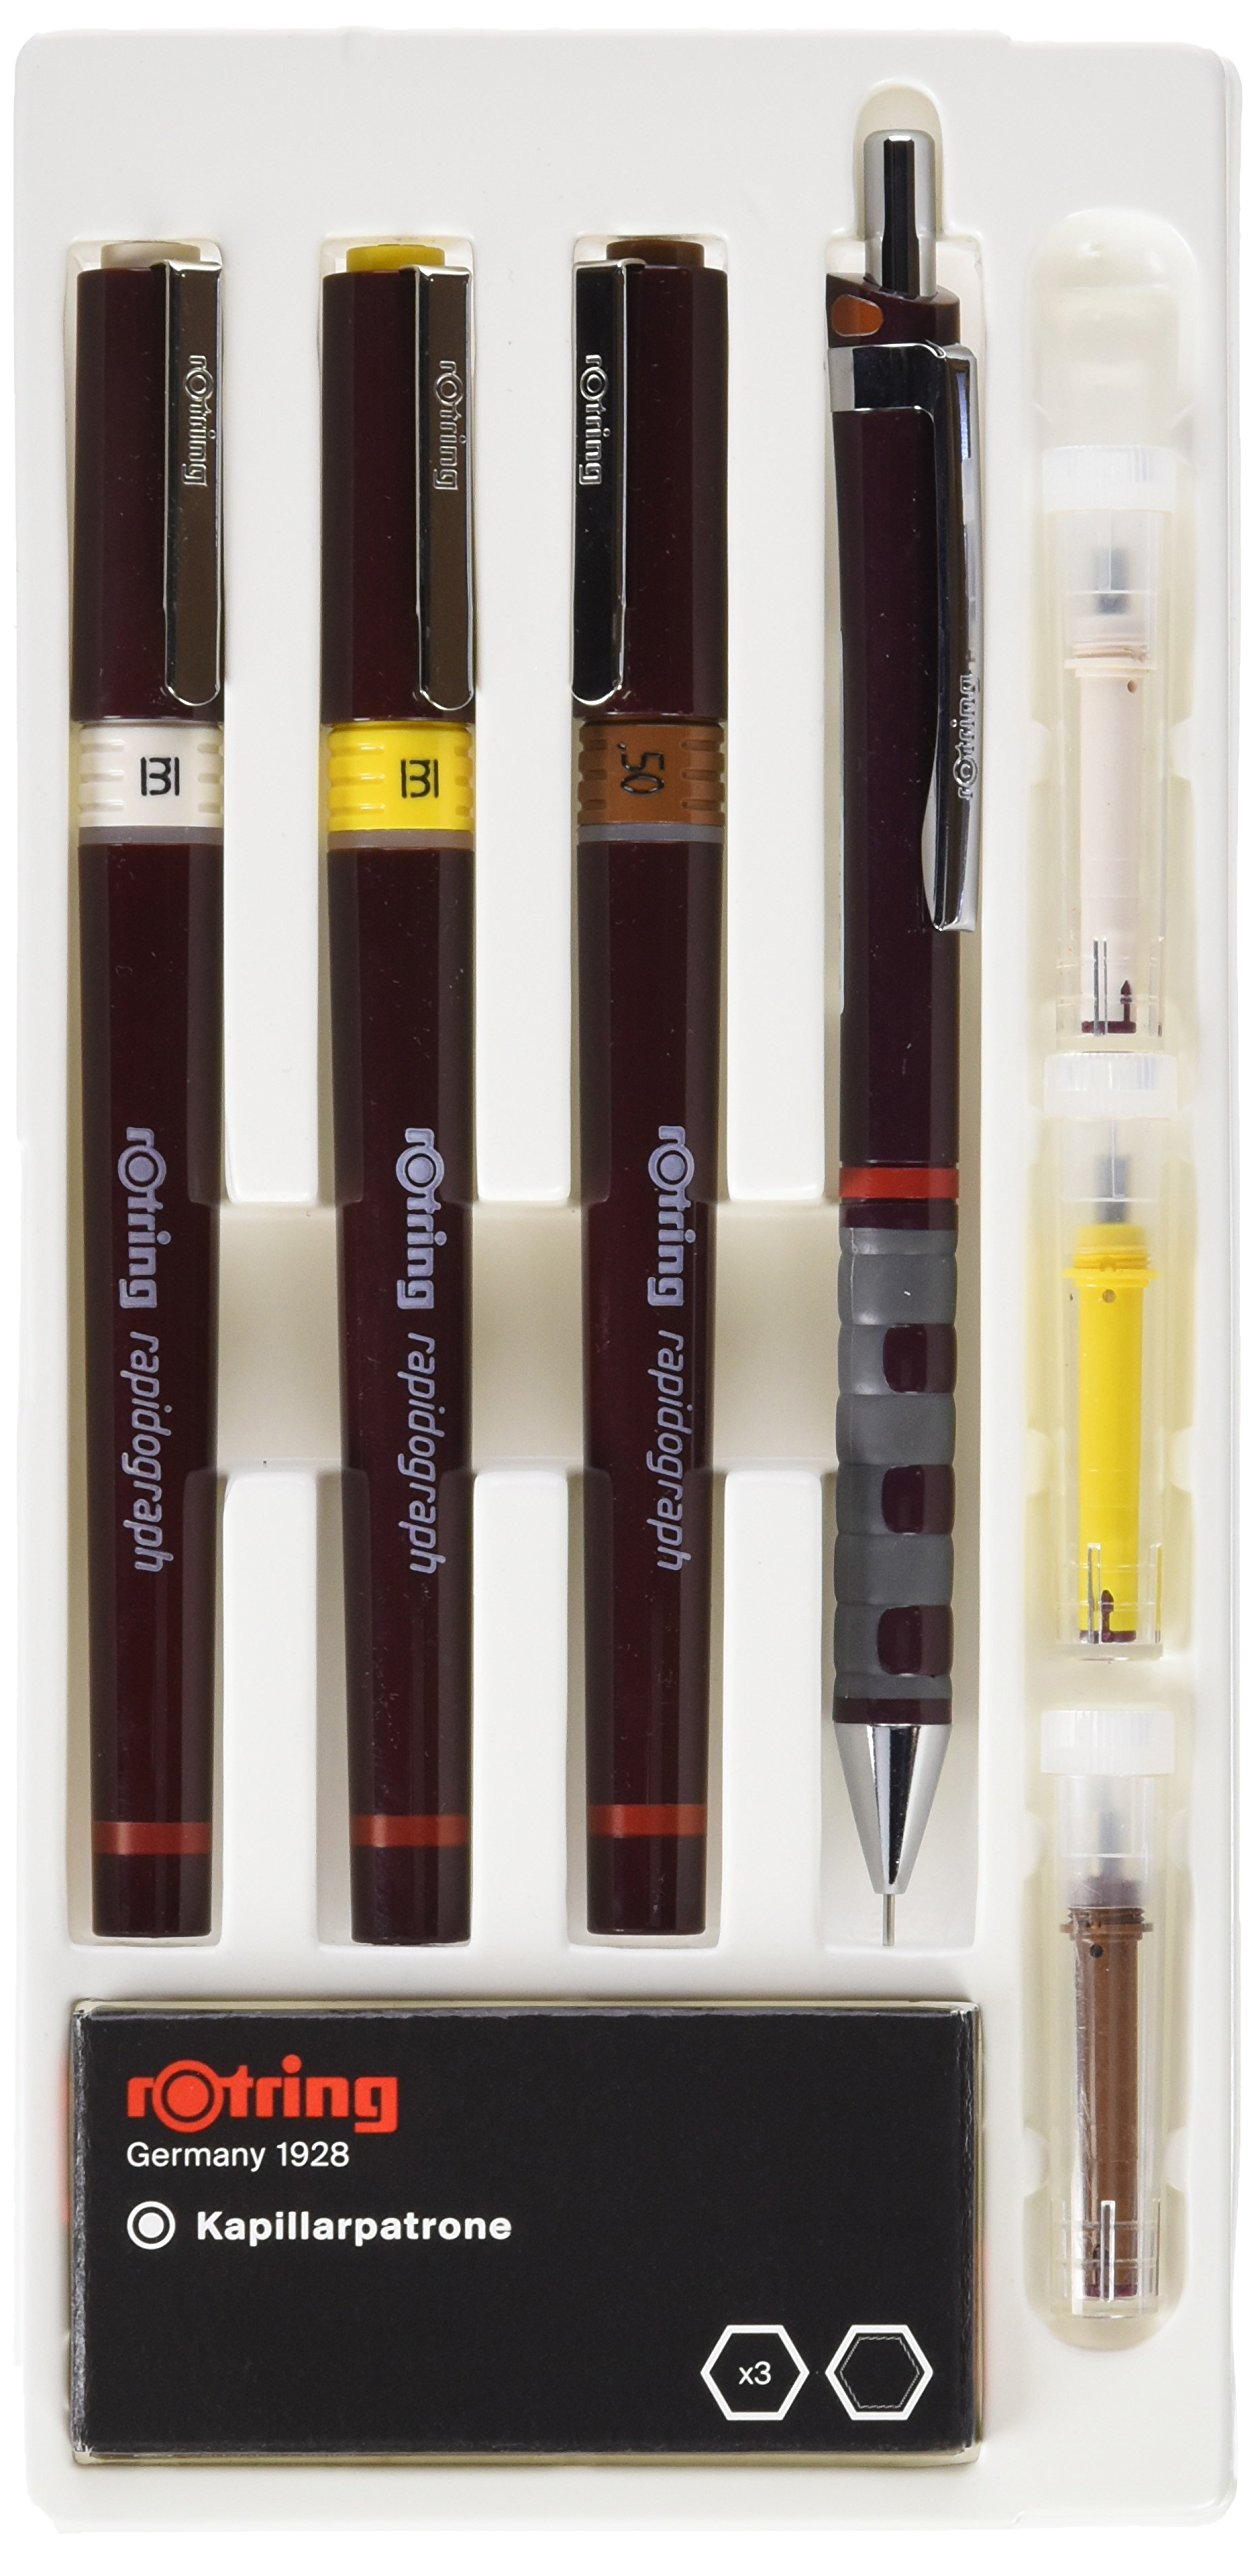 Rotring Rapidograph Technical Drawing Pen Junior Set, 3 Pens with Line Widths of 0.25mm to 0.5mm, Brown (S0699480) by Rotring